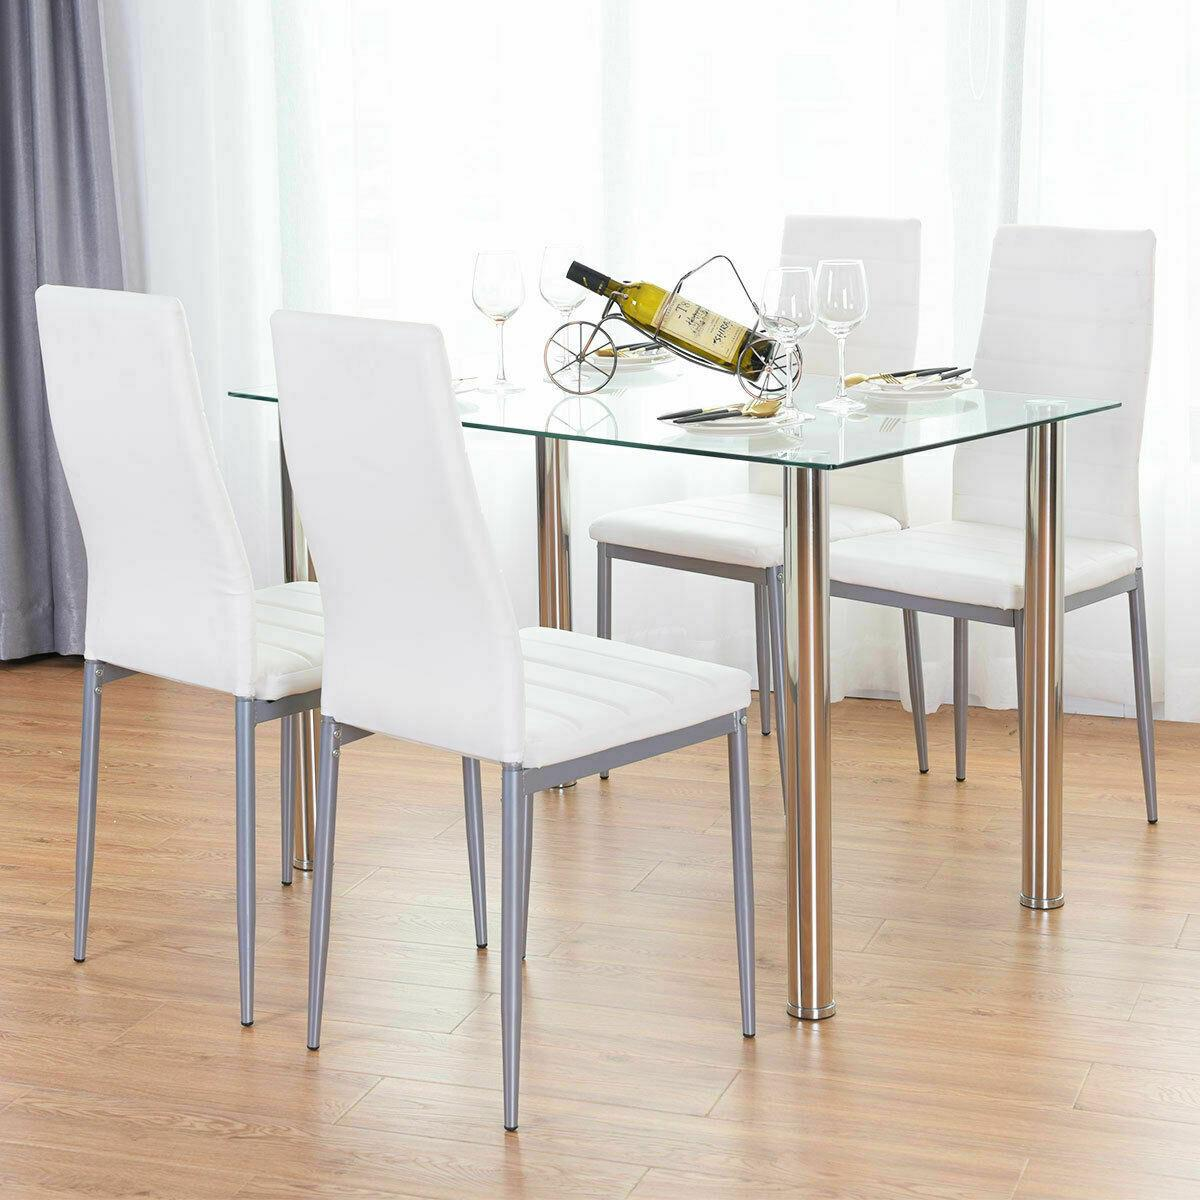 Details about 5 Piece Dining Table Set White 4 Chair Glass Metal Kitchen  Dining Room Breakfast